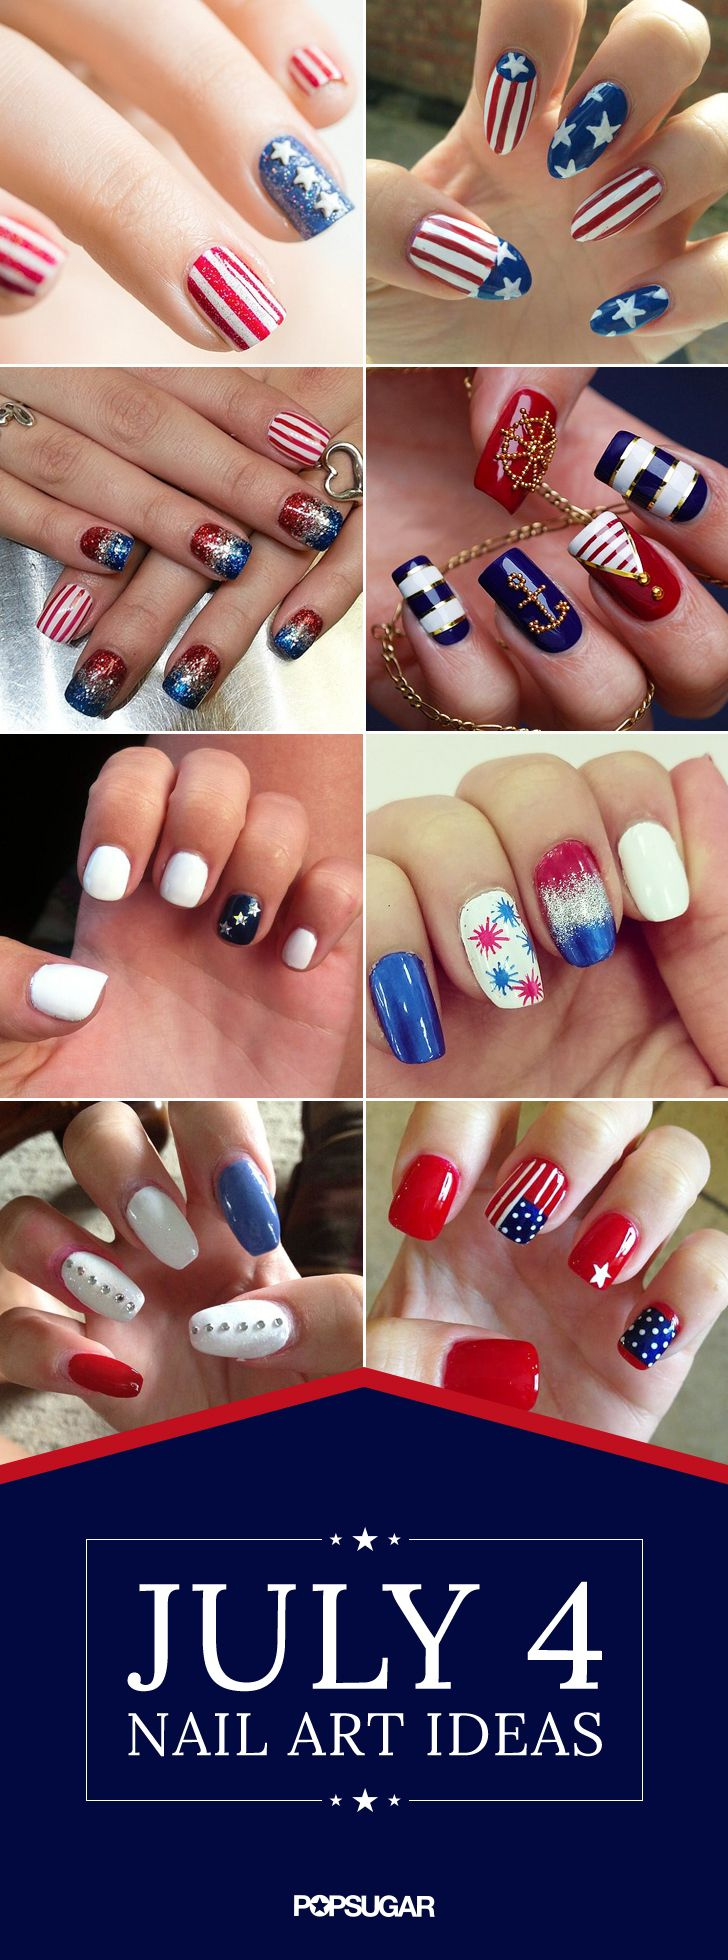 Even More Inspiration For Your July 4 Nail Art In 2018 Nails